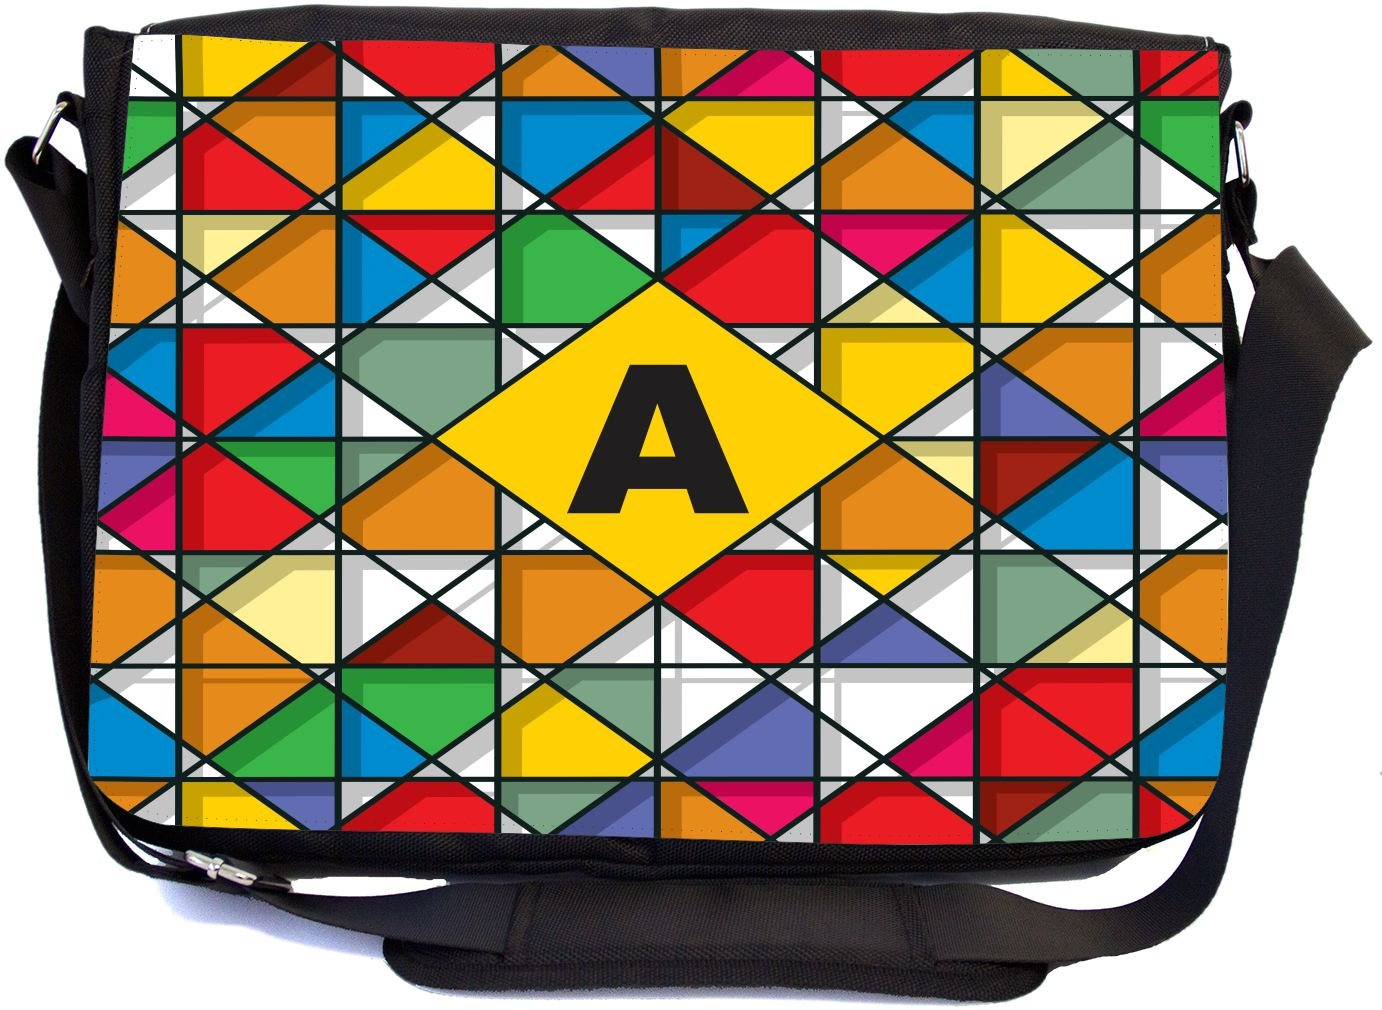 Rikki Knight Letter A Monogram Vibrant Colors Stained Glass Design Design Combo Multifunction Messenger Laptop Bag - with Padded Insert for School or Work - Includes Wristlet & Mirror